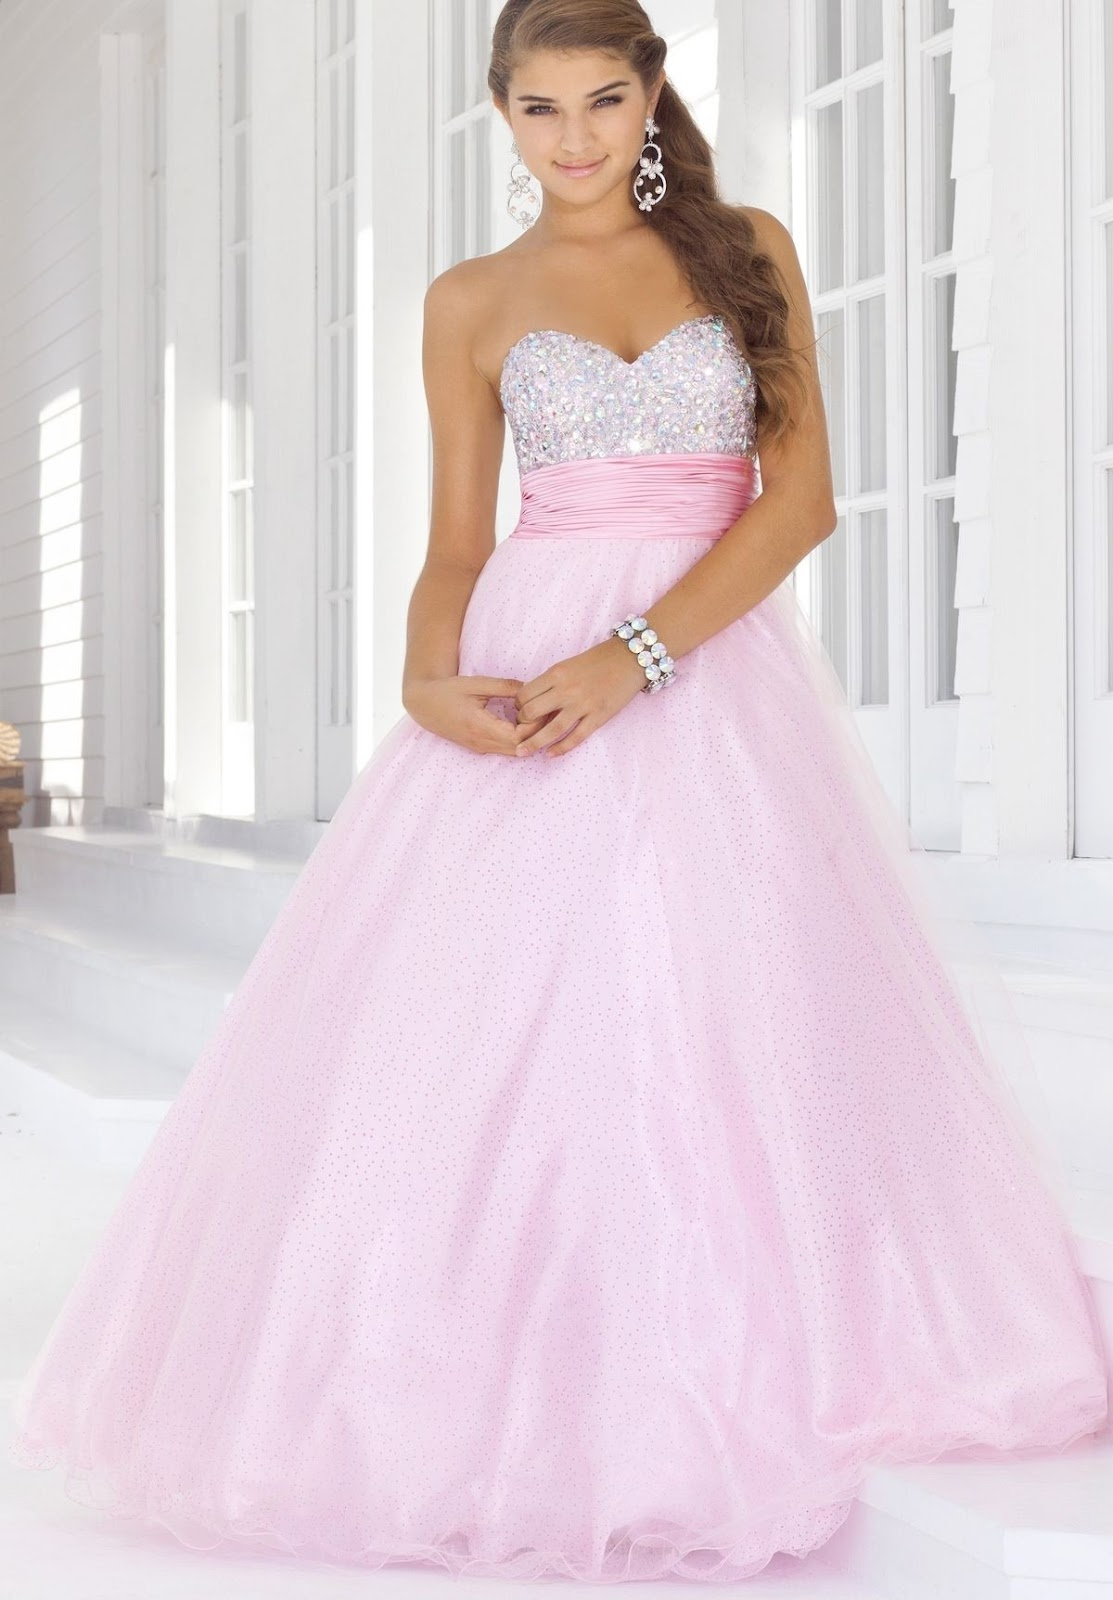 WhiteAzalea Junior Dresses: Beautiful Plus Size Junior Prom Dresses